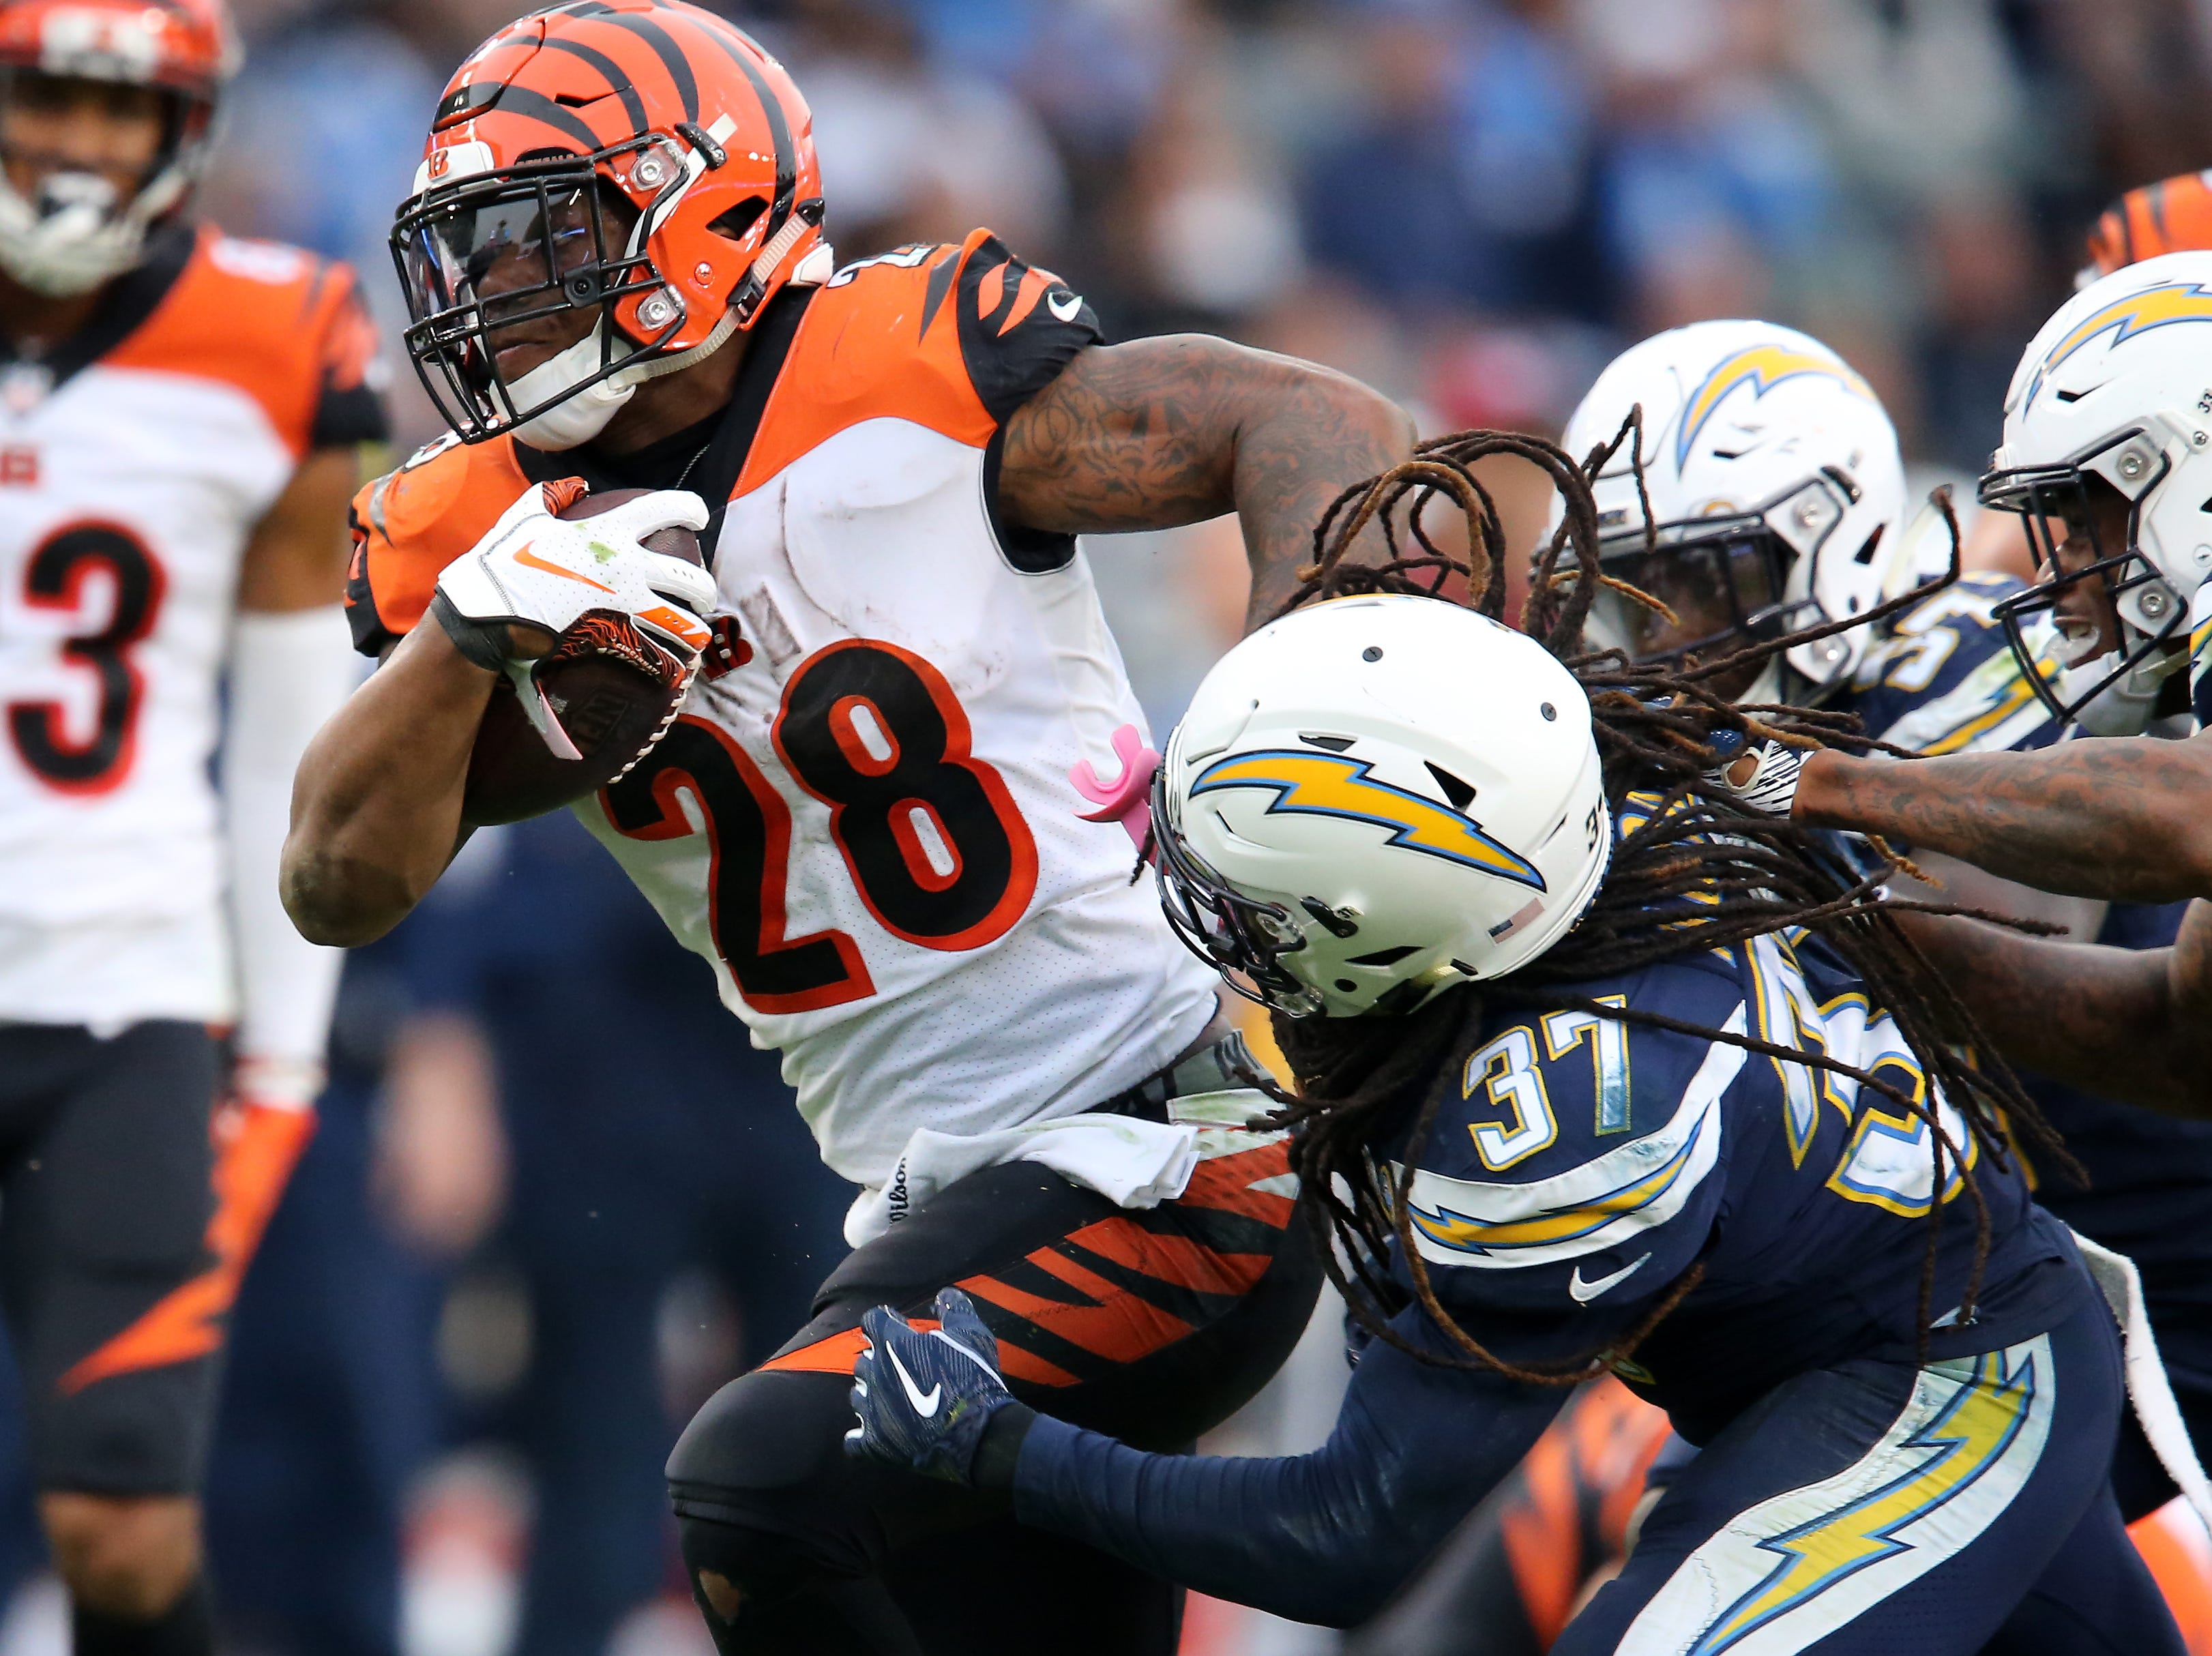 Cincinnati Bengals running back Joe Mixon (28) carries the ball in the fourth quarter of a Week 14 NFL football game against the Los Angeles Chargers, Sunday, Dec. 9, 2018, at StubHub Center in Carson, California. The Los Angeles Chargers won 26.21.